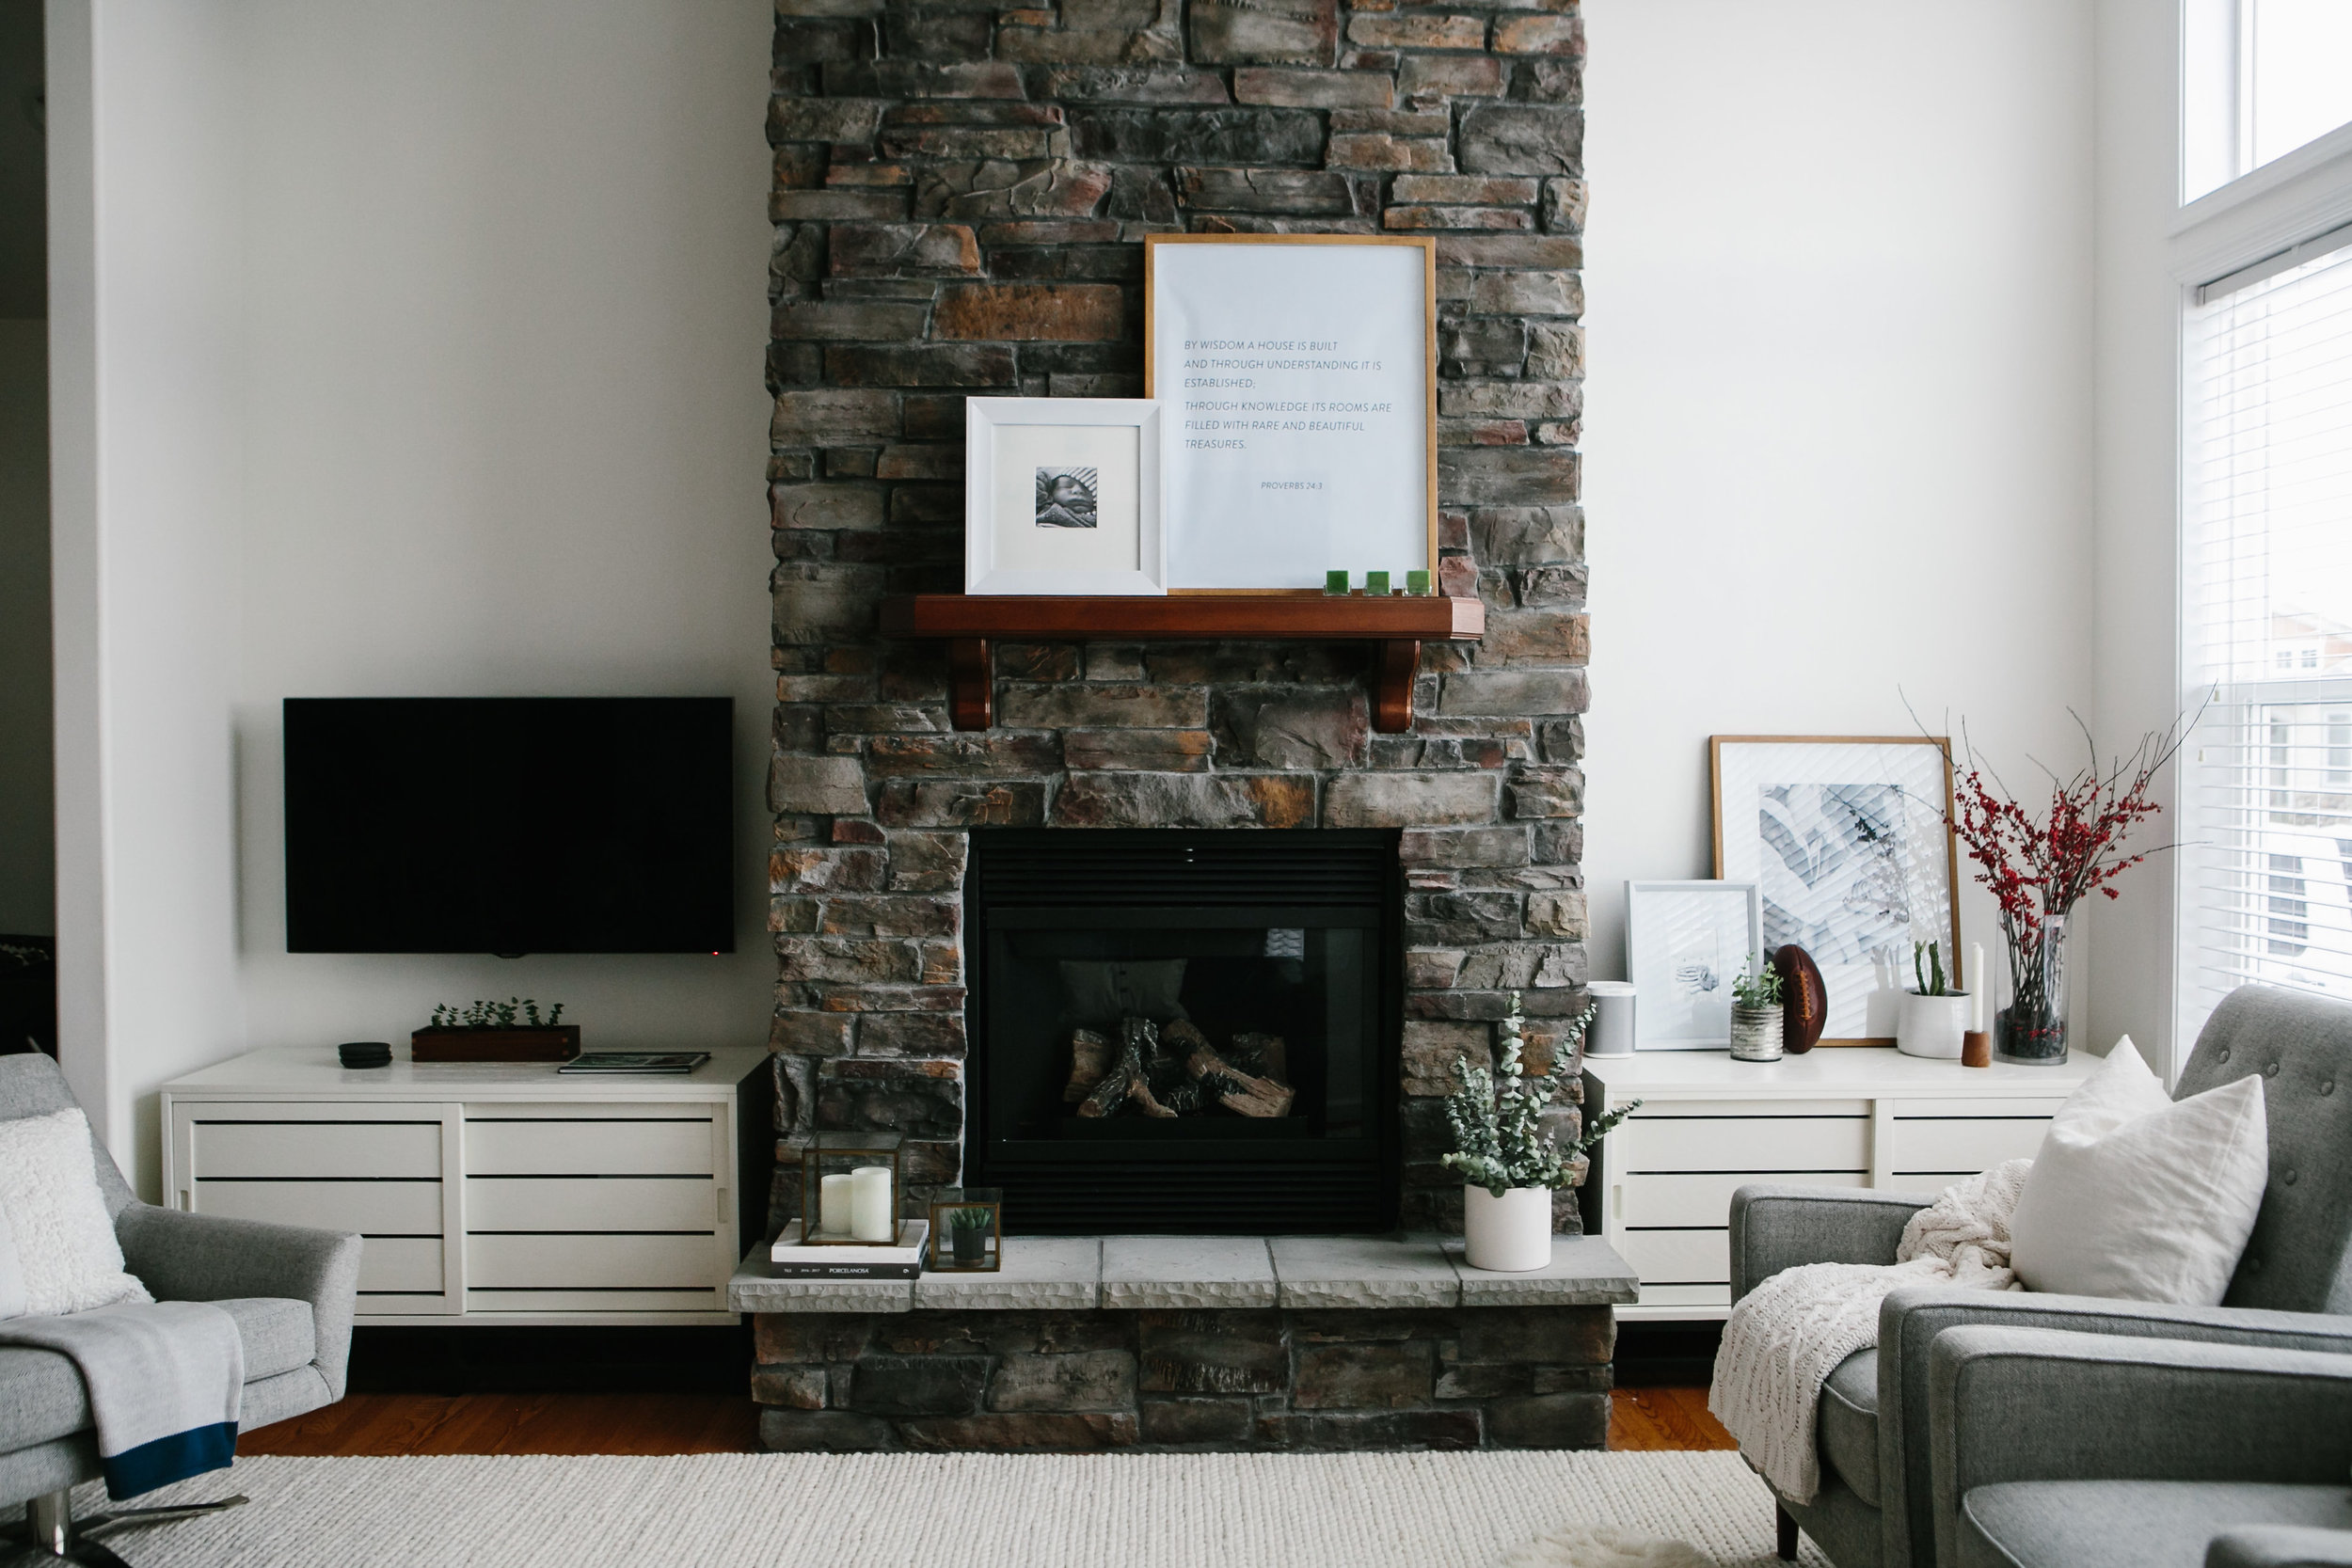 Natural stone grand fireplace with white Crate and Barrel base cabinets in a modern coastal home.